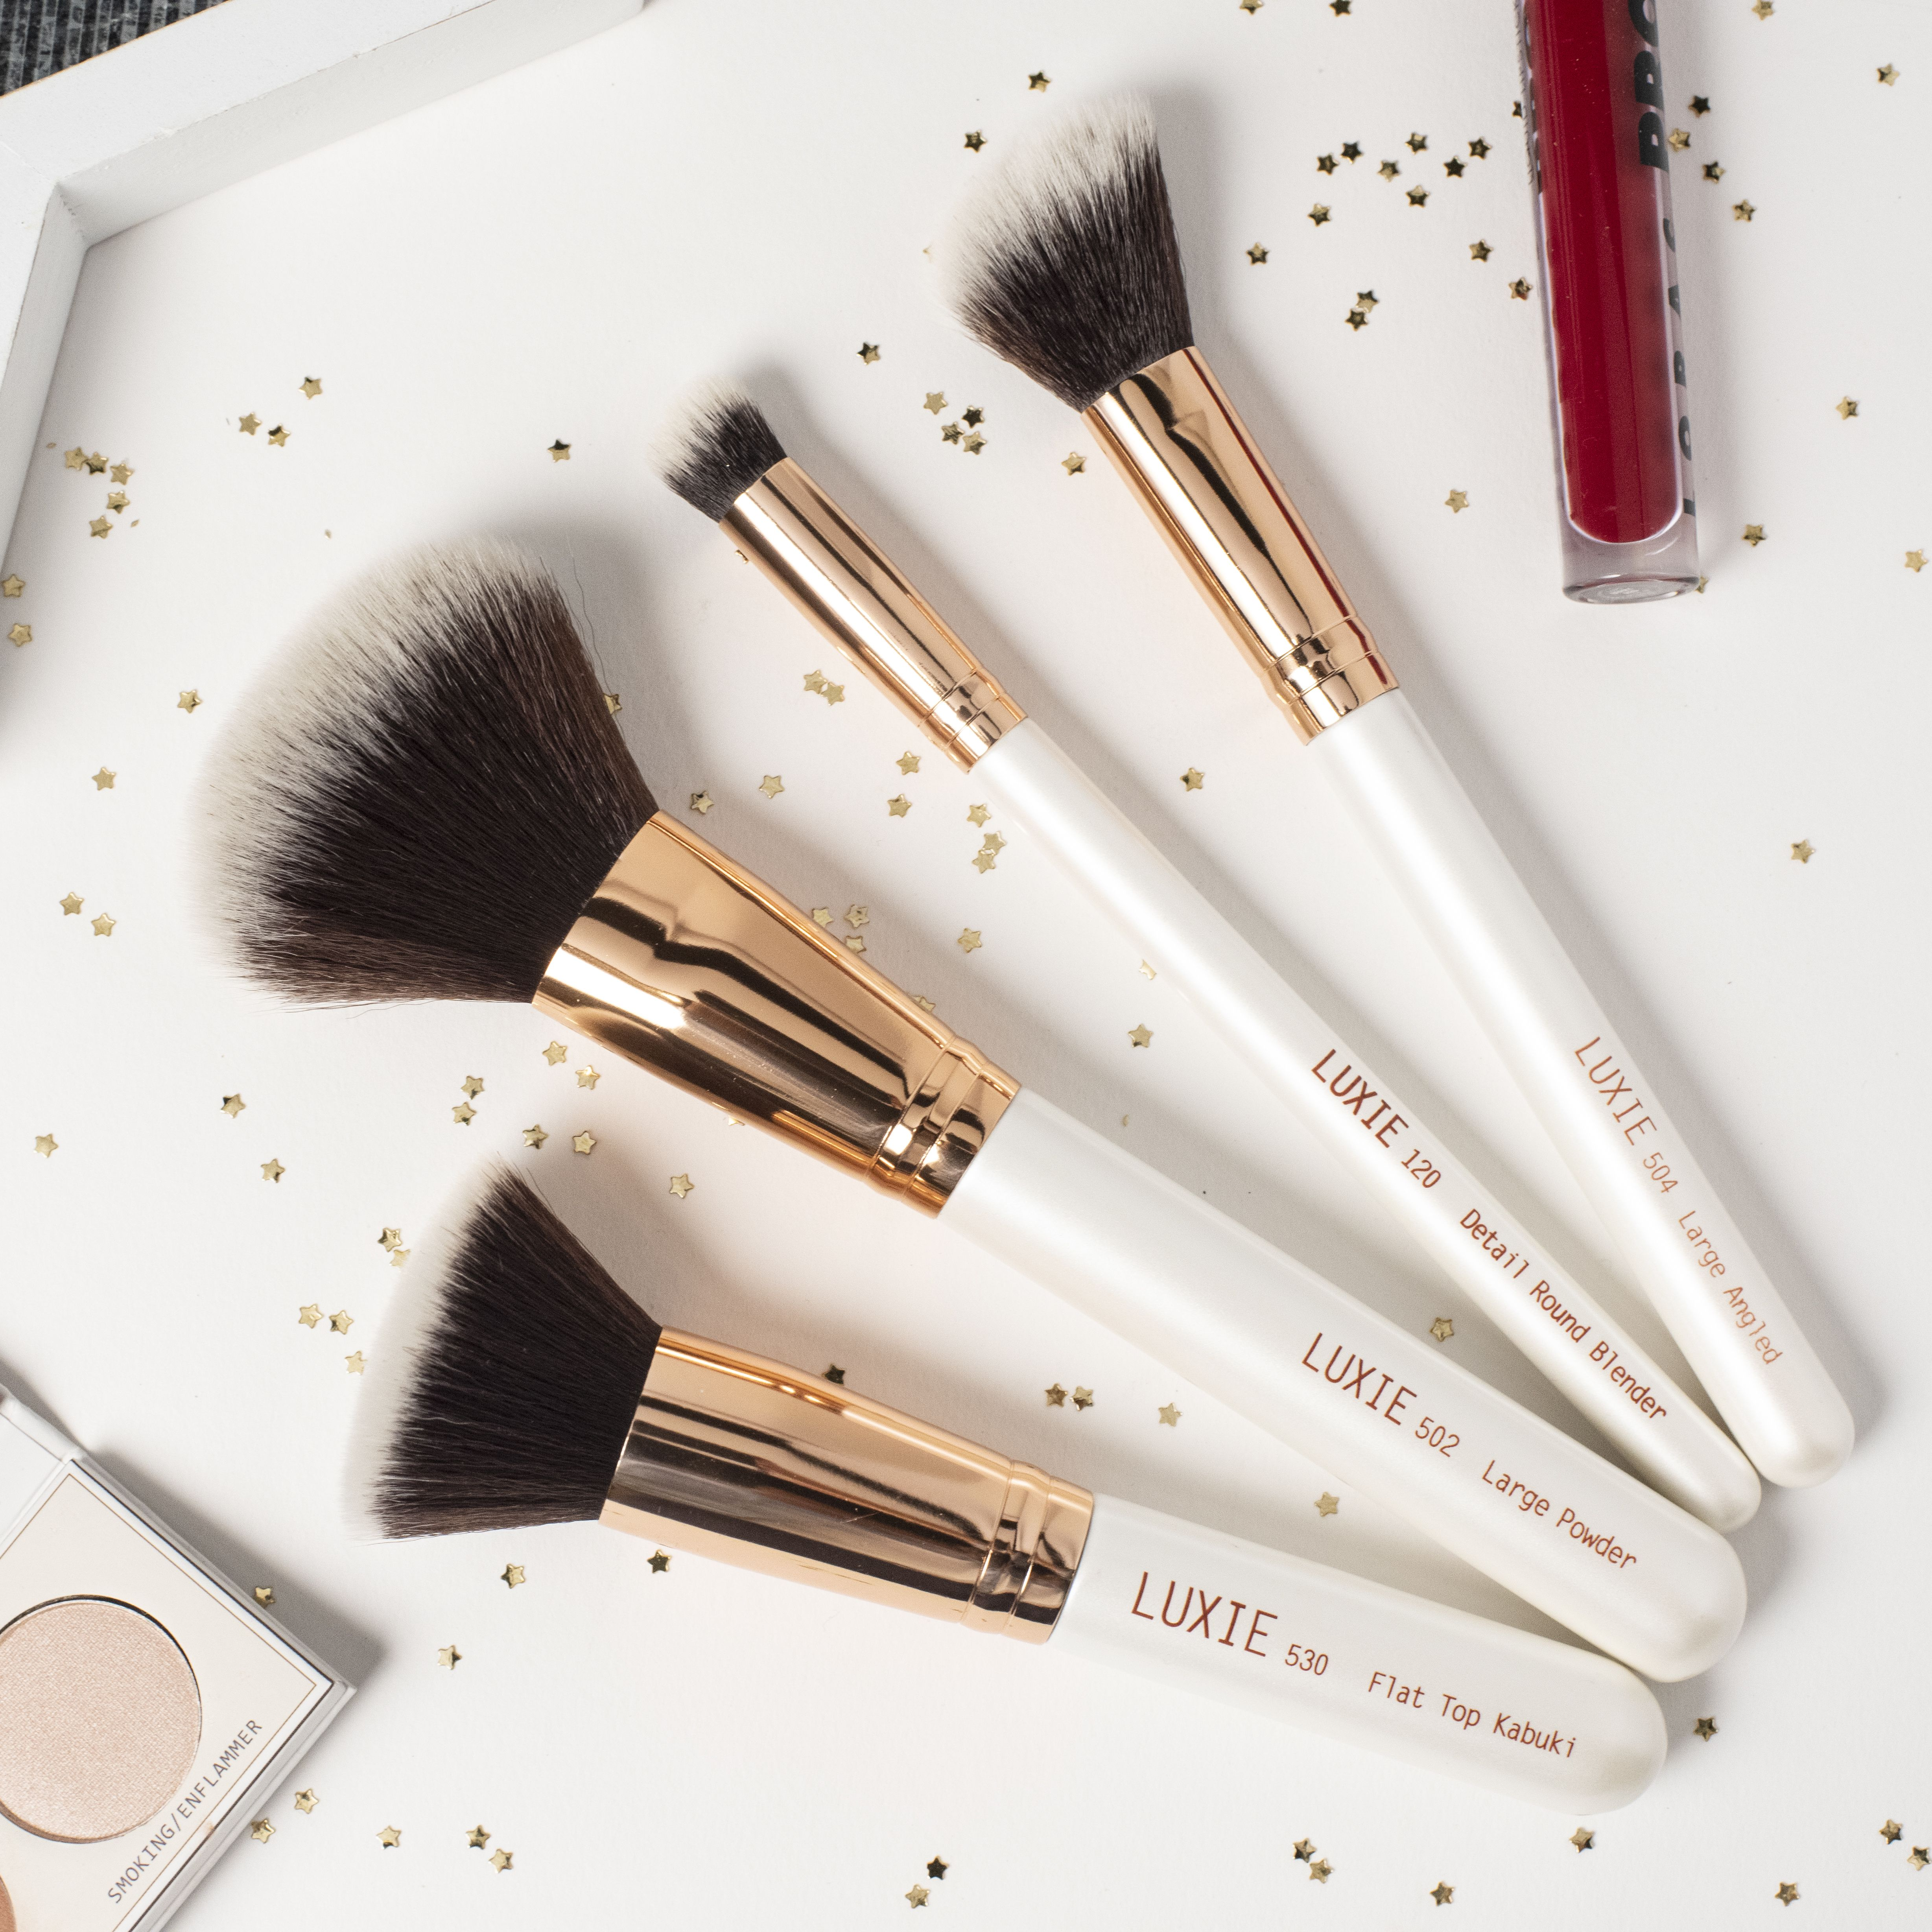 LUXIE Flawless Face Brush Set Face brush set, Flawless